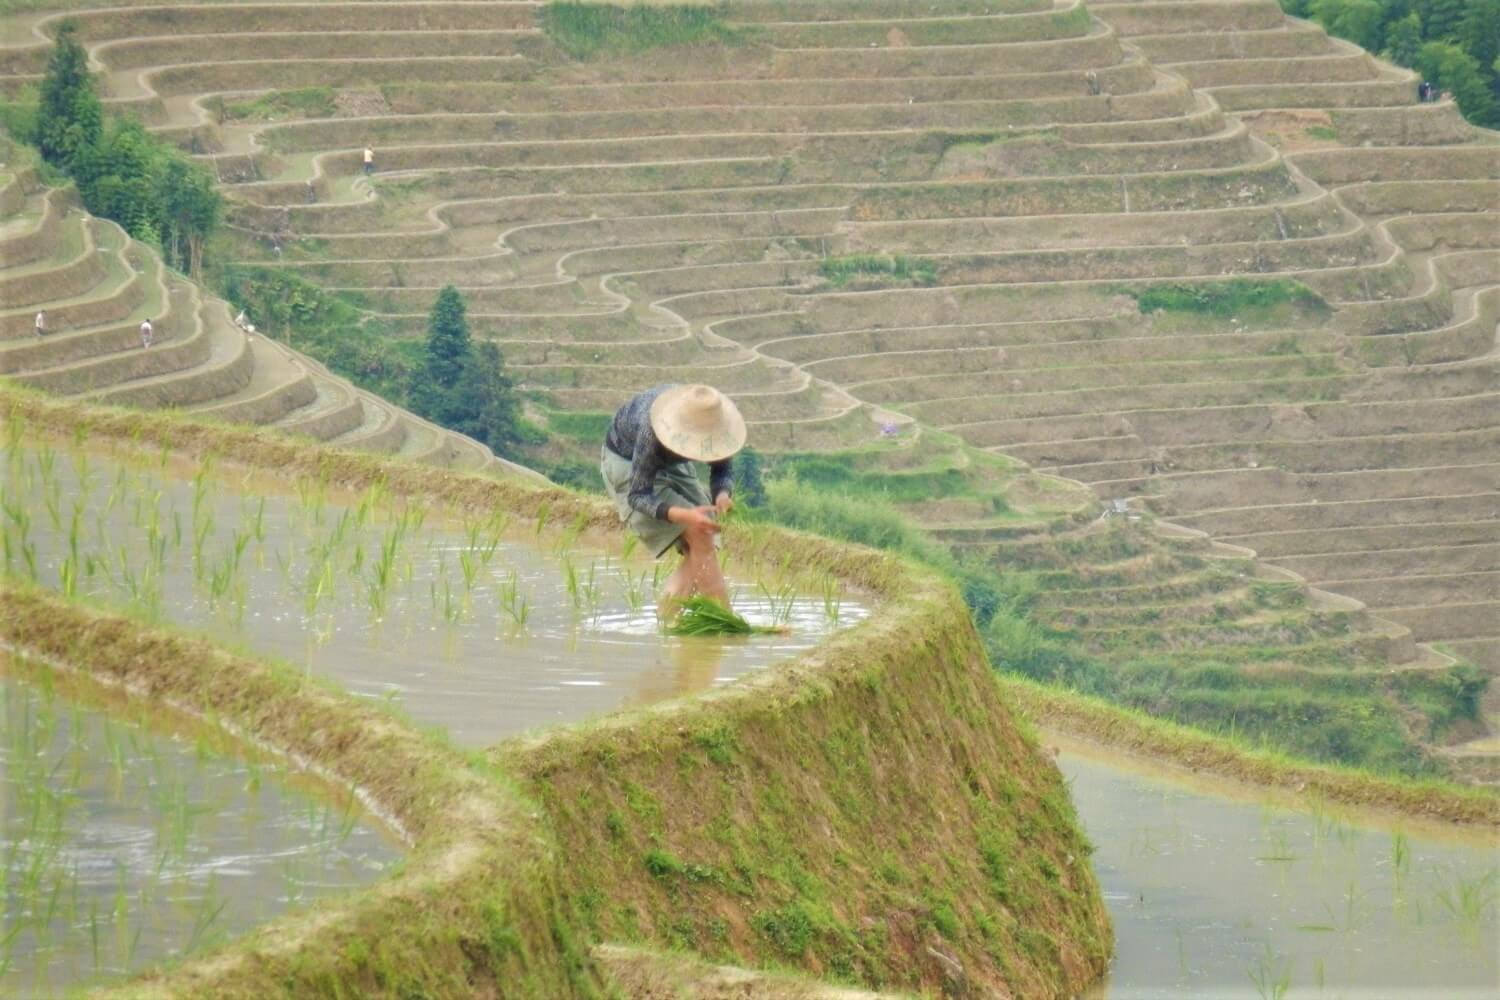 A citizen working on the rice fields in China